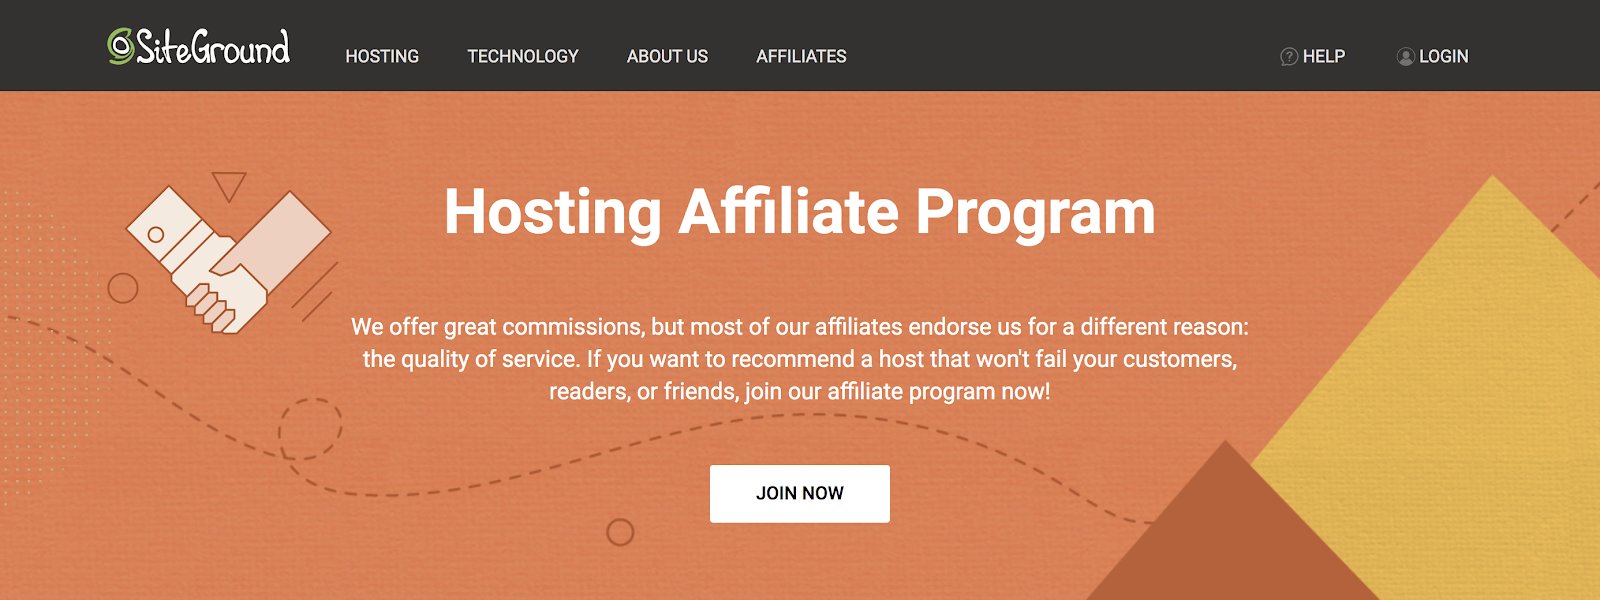 Siteground's Web Hosting Affiliate Program Explainer